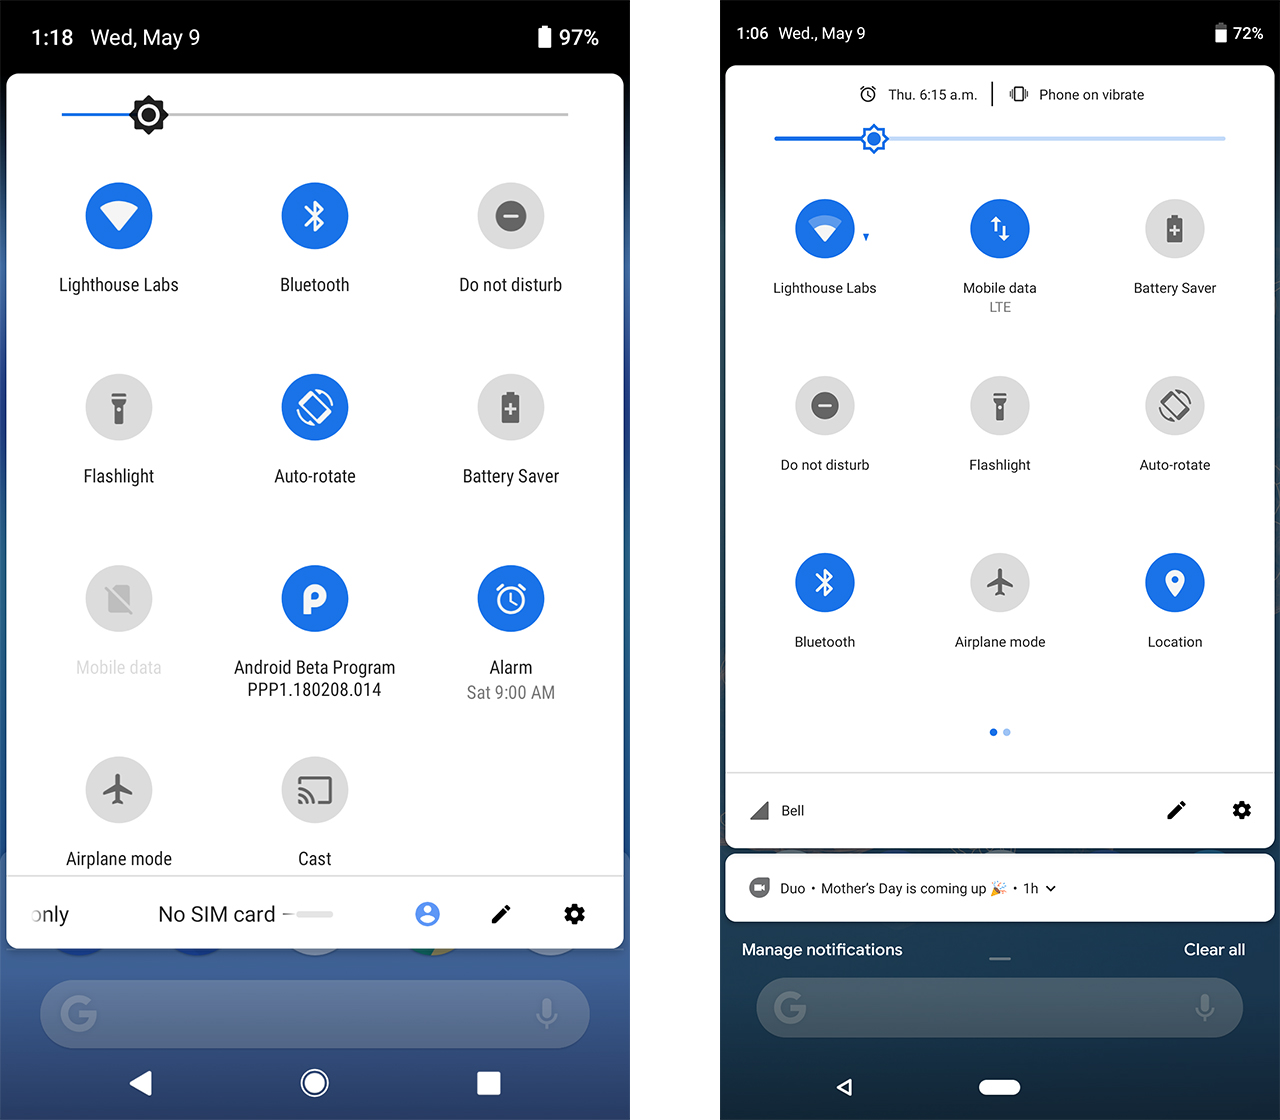 Google Assistant will soon be able to make appointments on your behalf